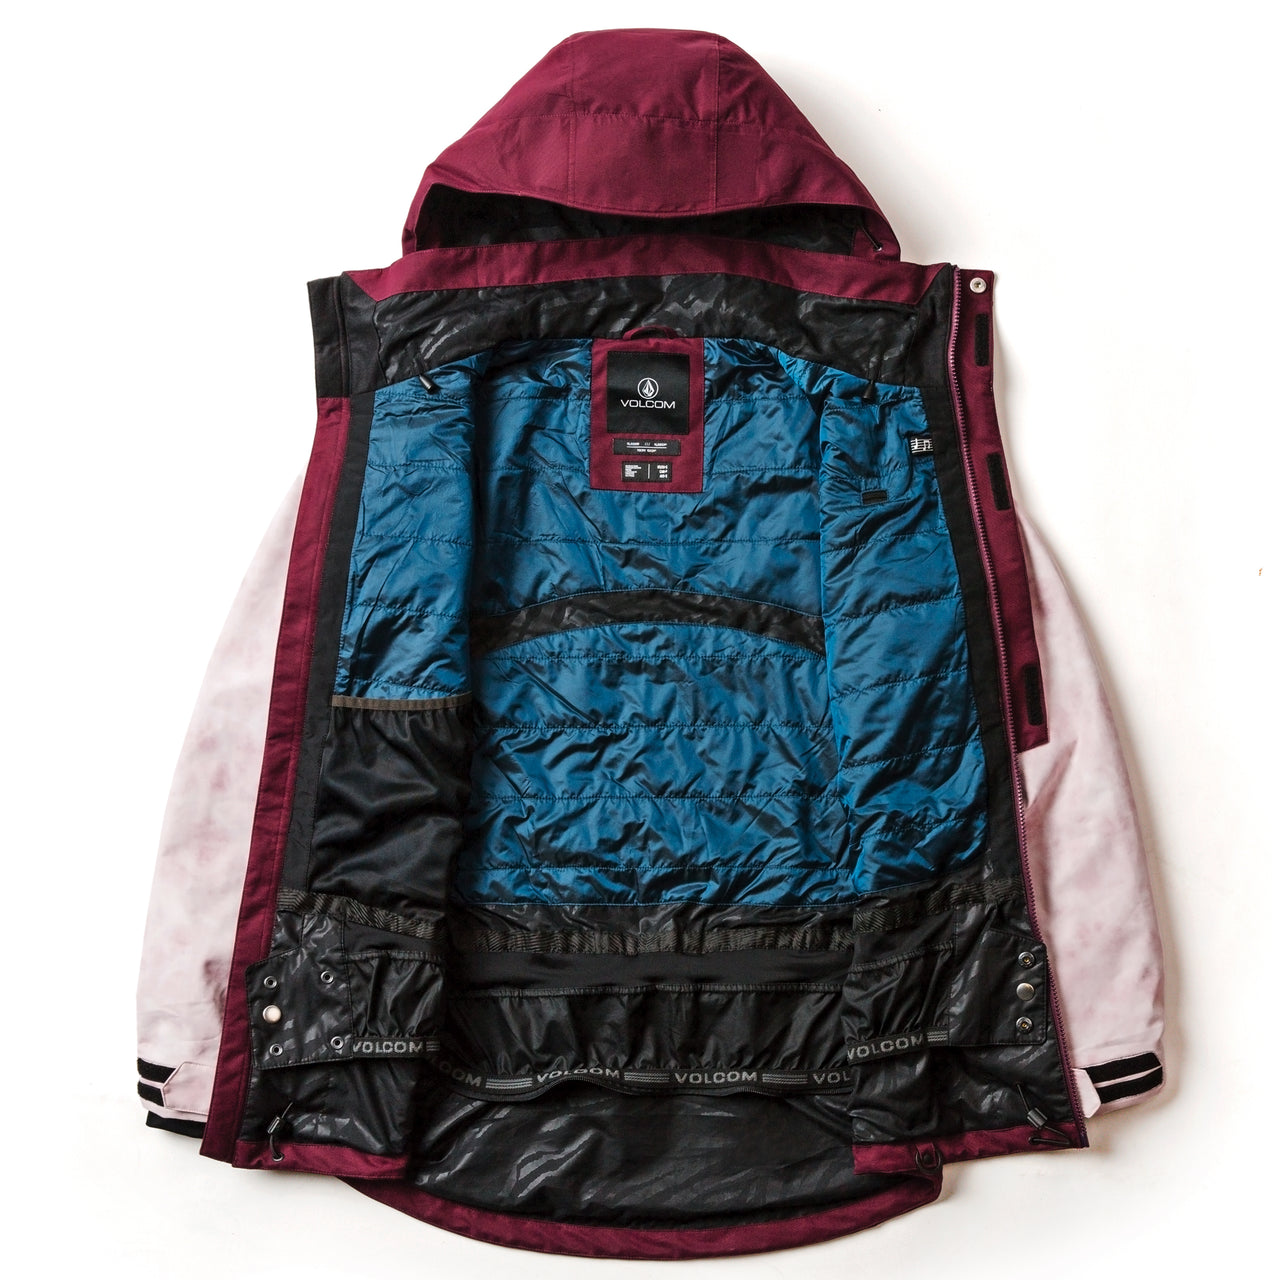 THE PINE 2L TDS JACKET